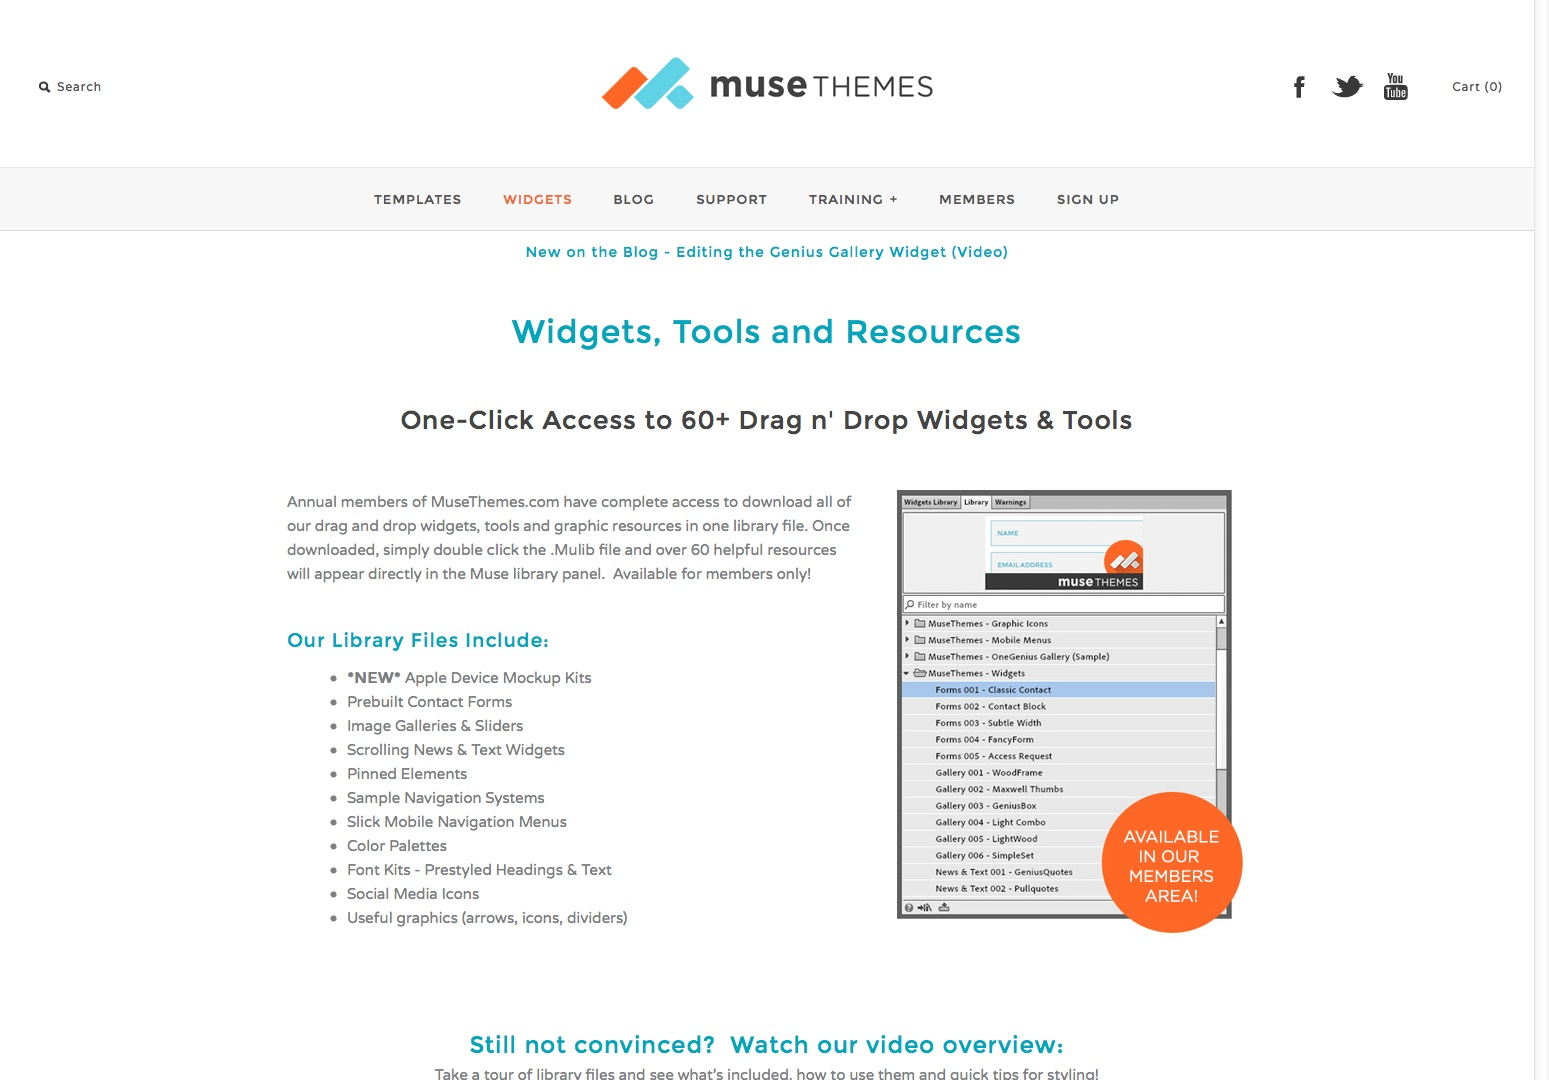 Adobe Muse Widgets Tools and Resources - by Muse Themes